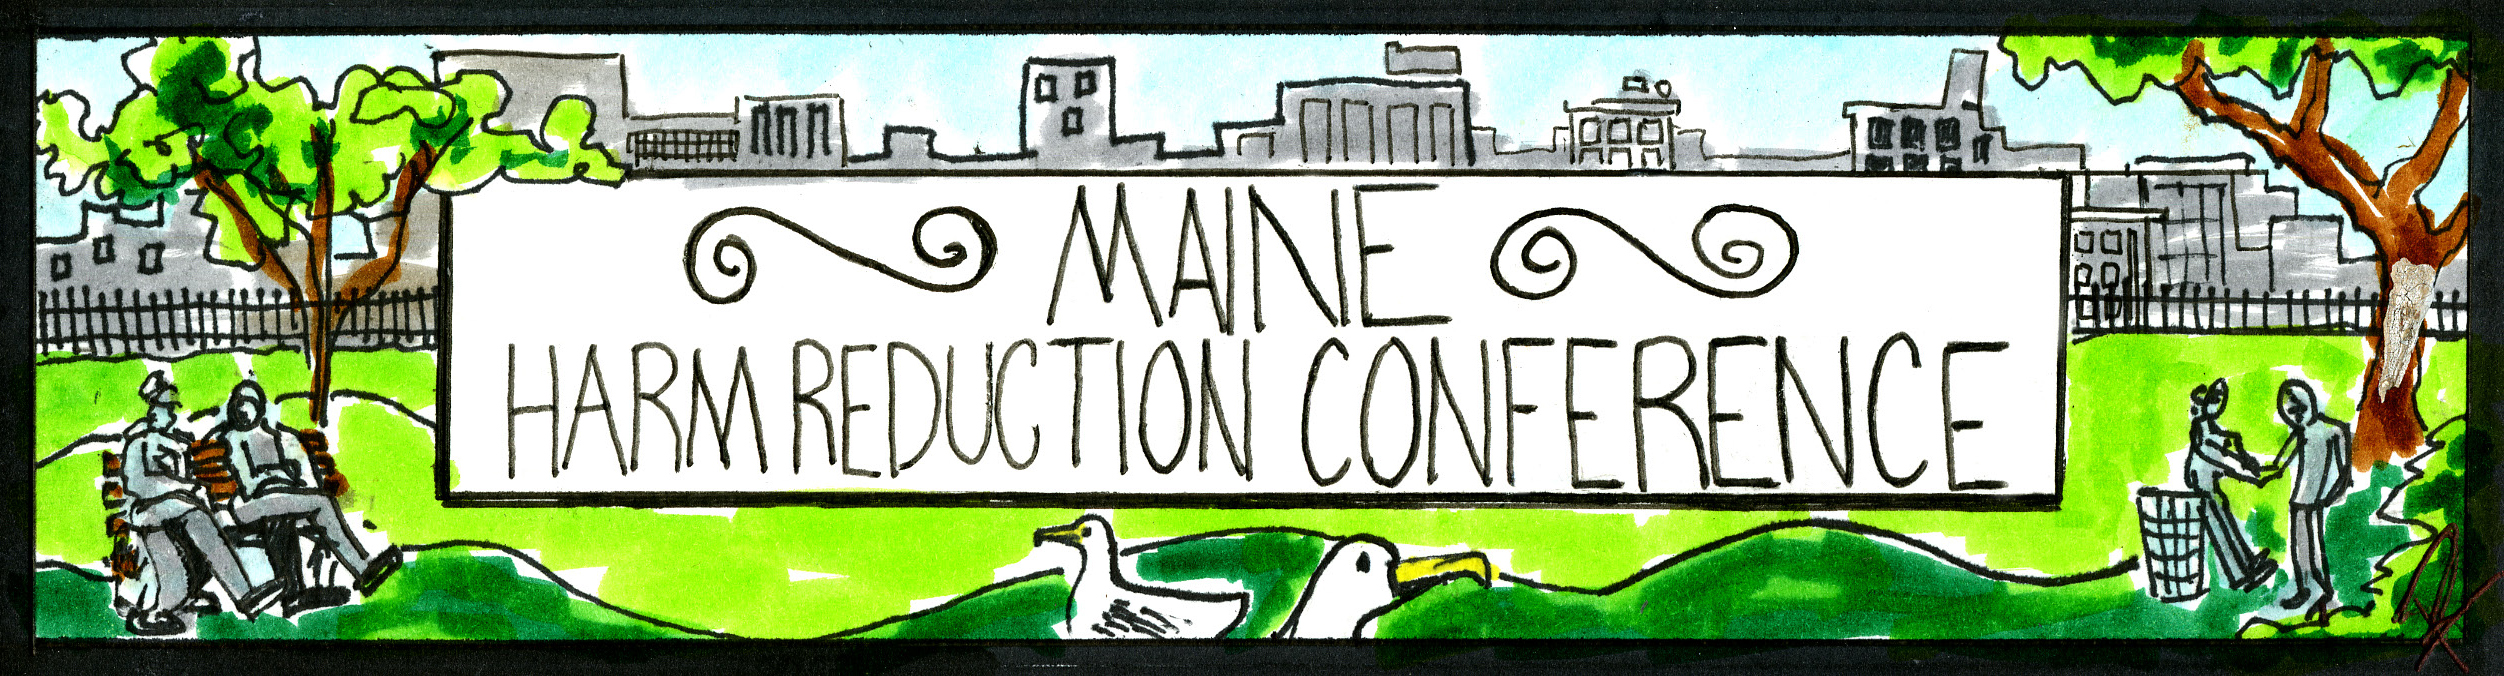 2019 Maine Harm Reduction Conference (ME#406/950)